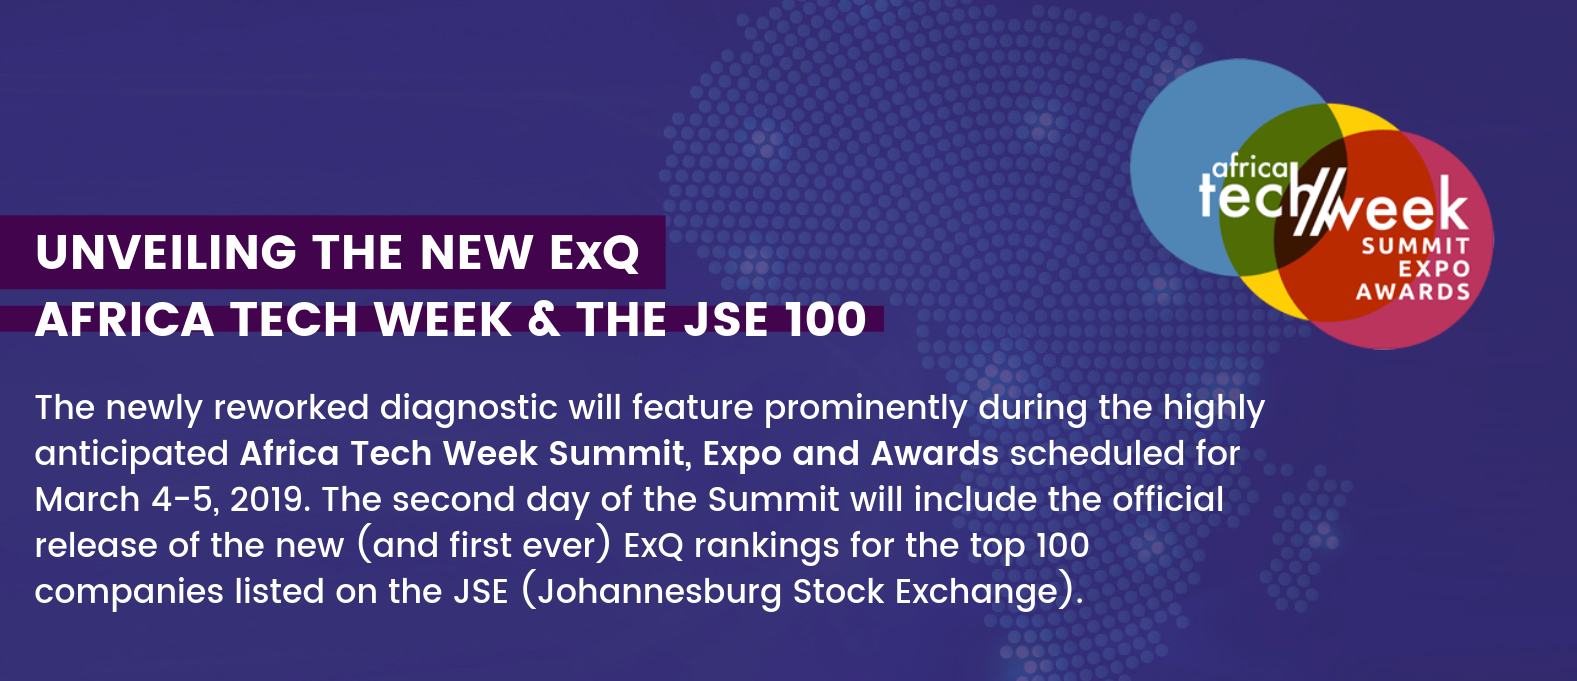 The New ExQ will feature at Africa Tech Week 2019, where it will be used to rank the JSE (Johannesburg Stock Exchange) 100.